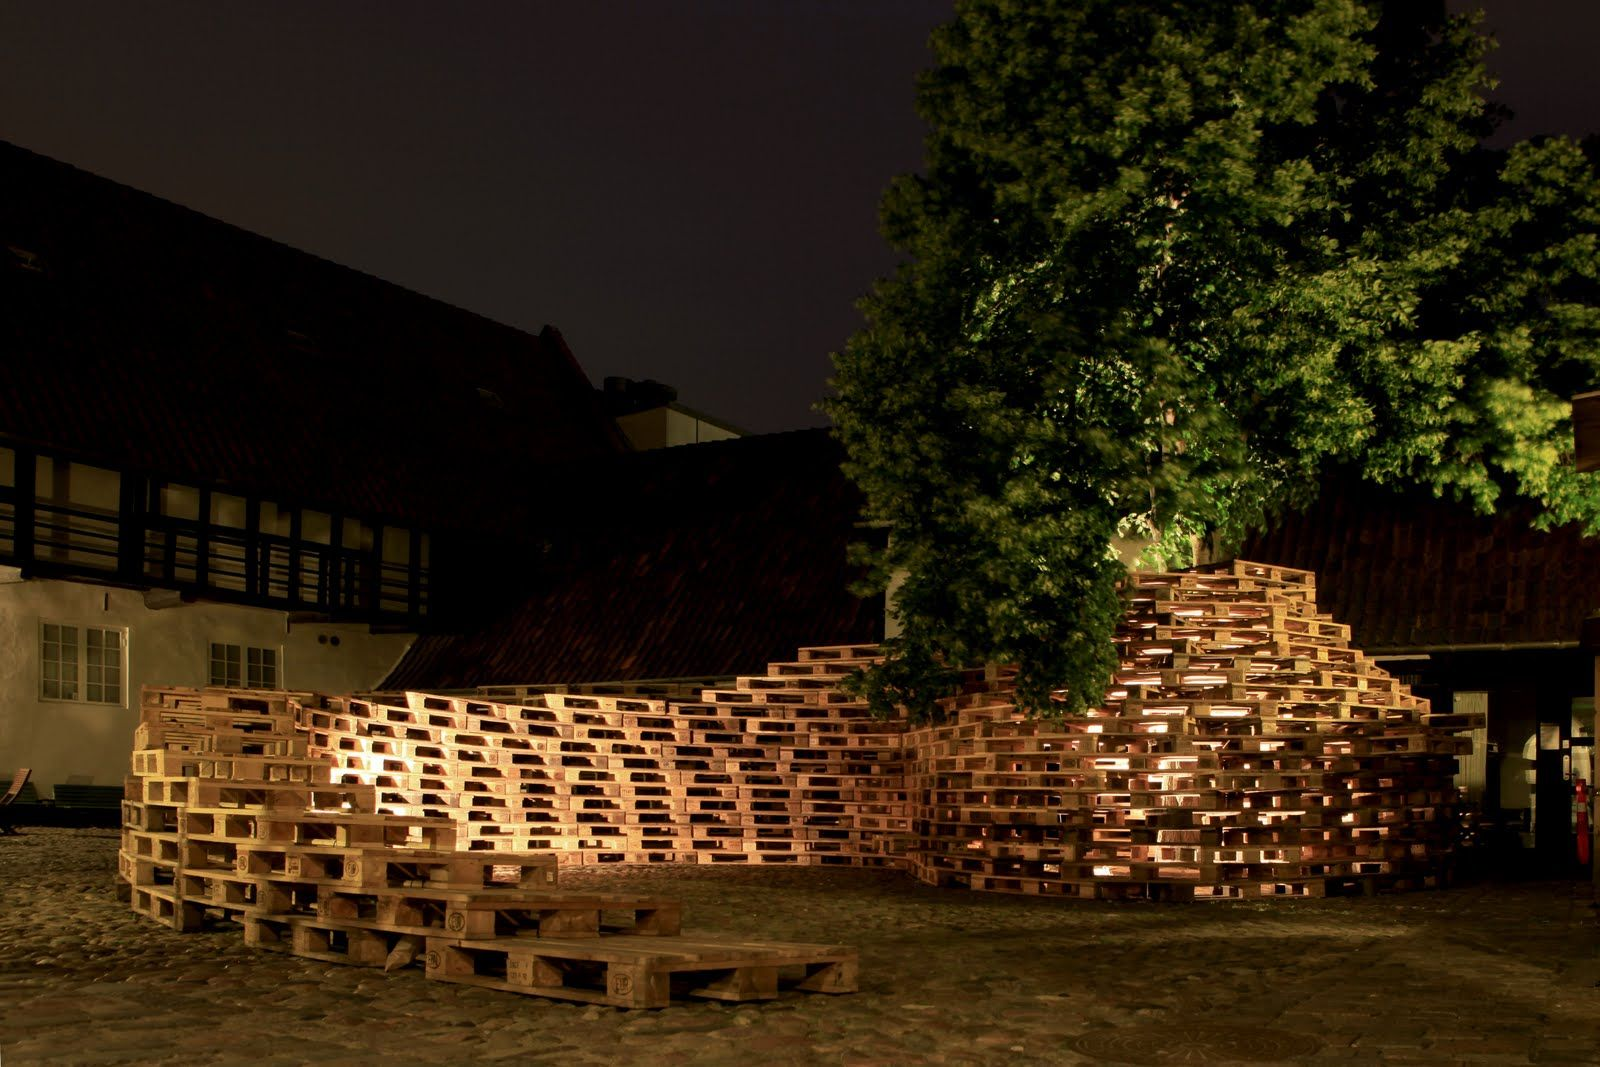 Theatre Set Pallets | kobberling and kaltwasser: jellyfish theatre